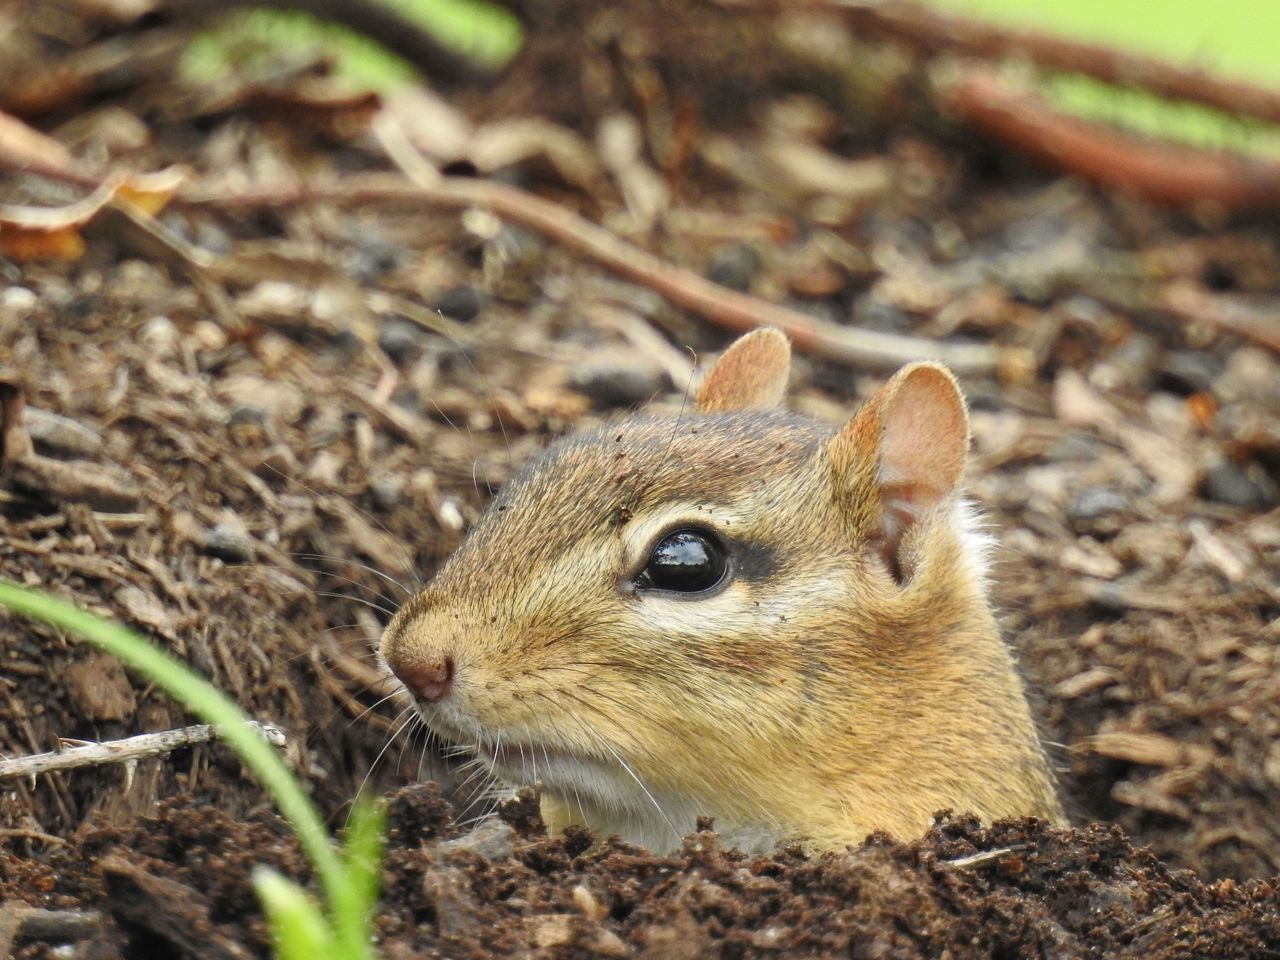 Chipmunk Chipmunk Close-up Chipmunk Photography Chipmunkface Chipmunks  Close-up Cuteness Cuteness Overload Cutenessoverload Day Focus On Foreground Grass Nature Nature Nature Photography Nature_collection Naturelovers No People Outdoors Wild Animal Photography Wildlife Wildlife & Nature Wildlife And Nature Wildlife Photography Wildlife Photos